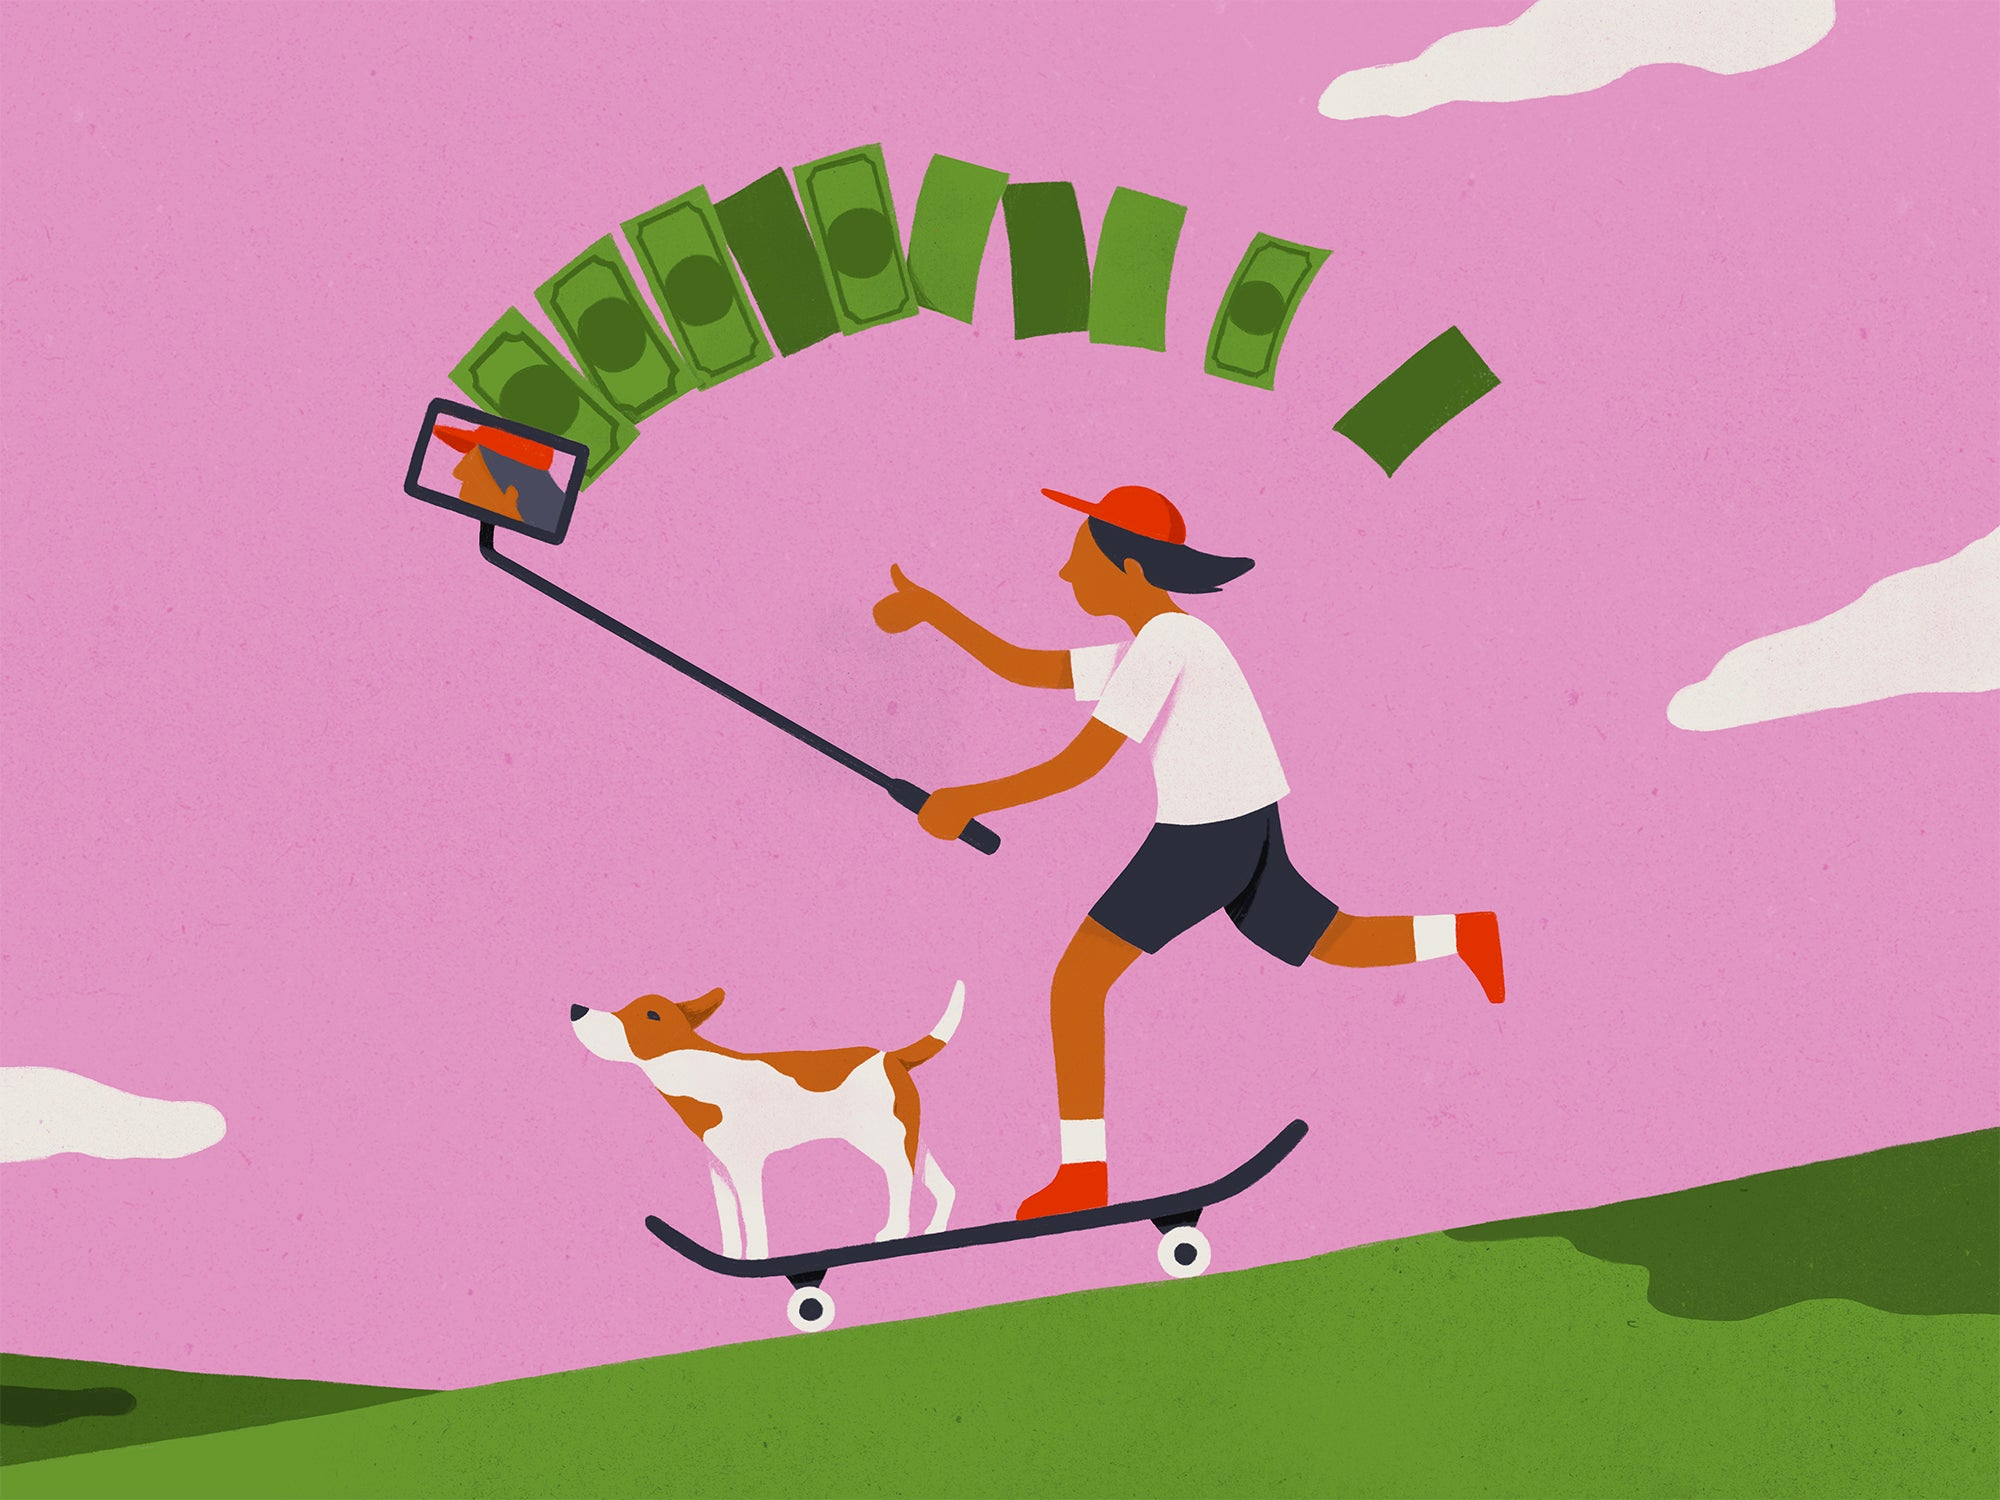 Illustration of a kid running a YouTube business, holding a phone and shooting a video while money streams out